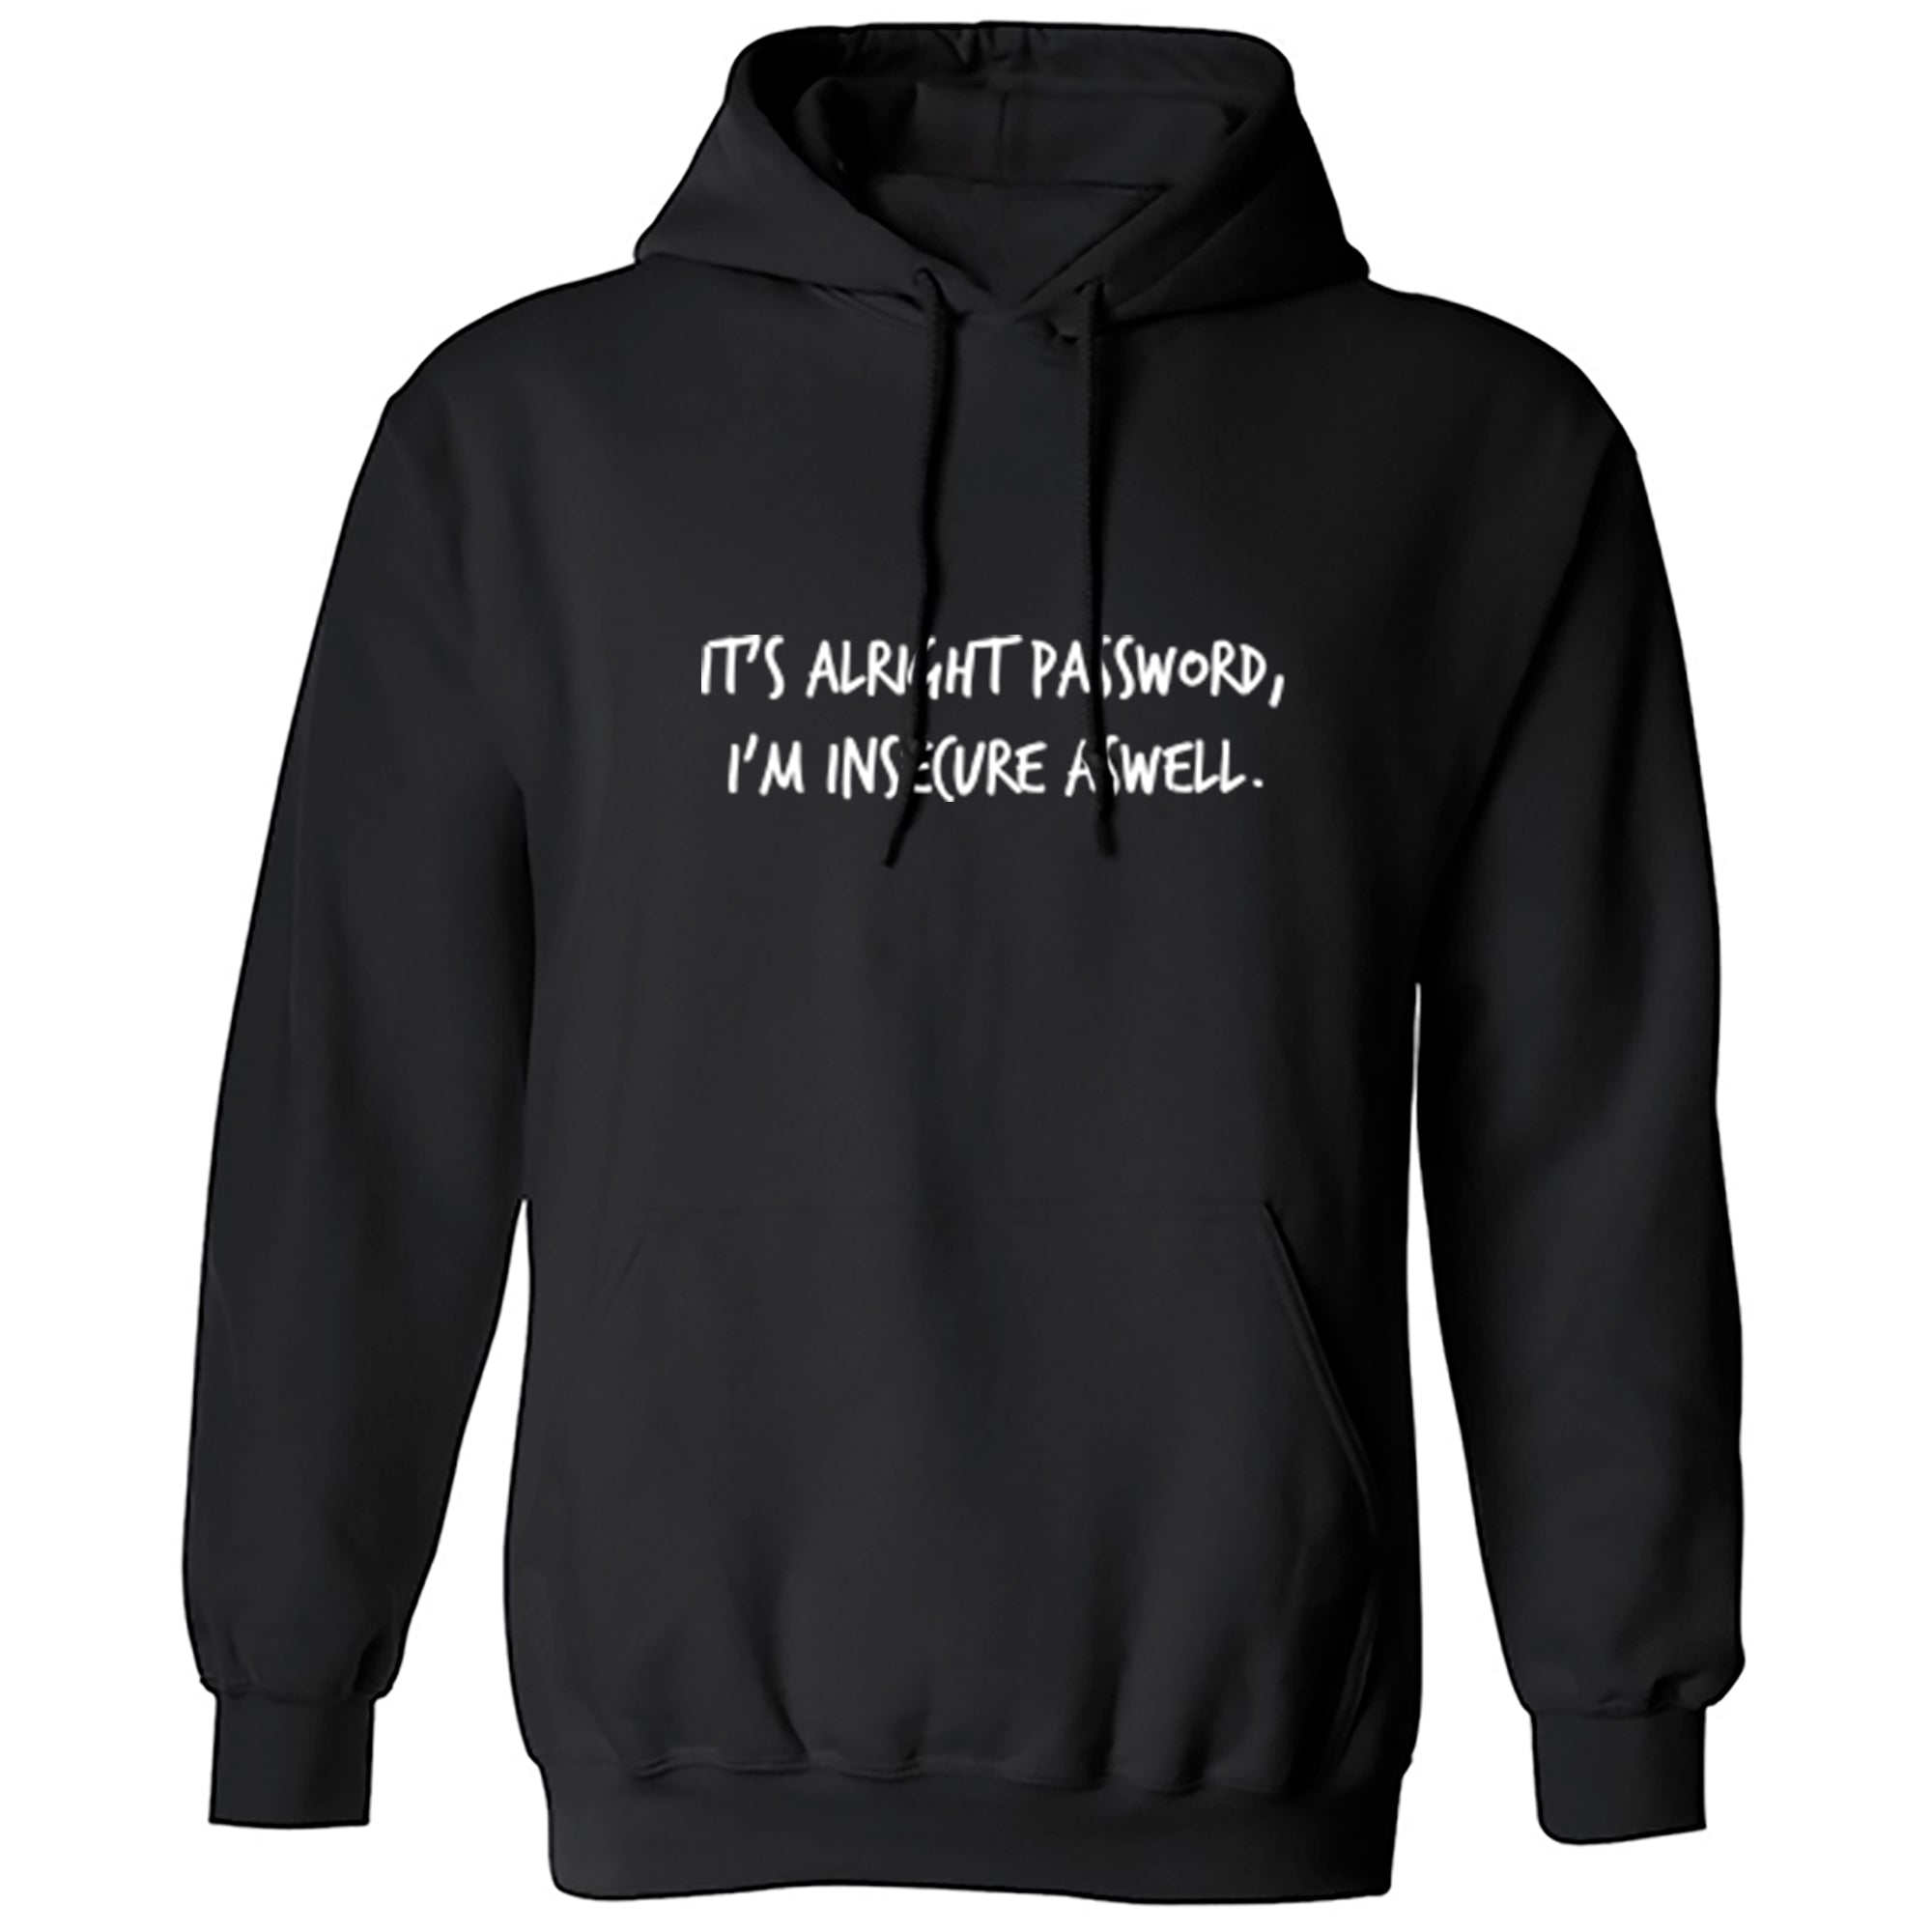 It's Alright Password, I'm Insecure Aswell Unisex Hoodie S1169 - Illustrated Identity Ltd.